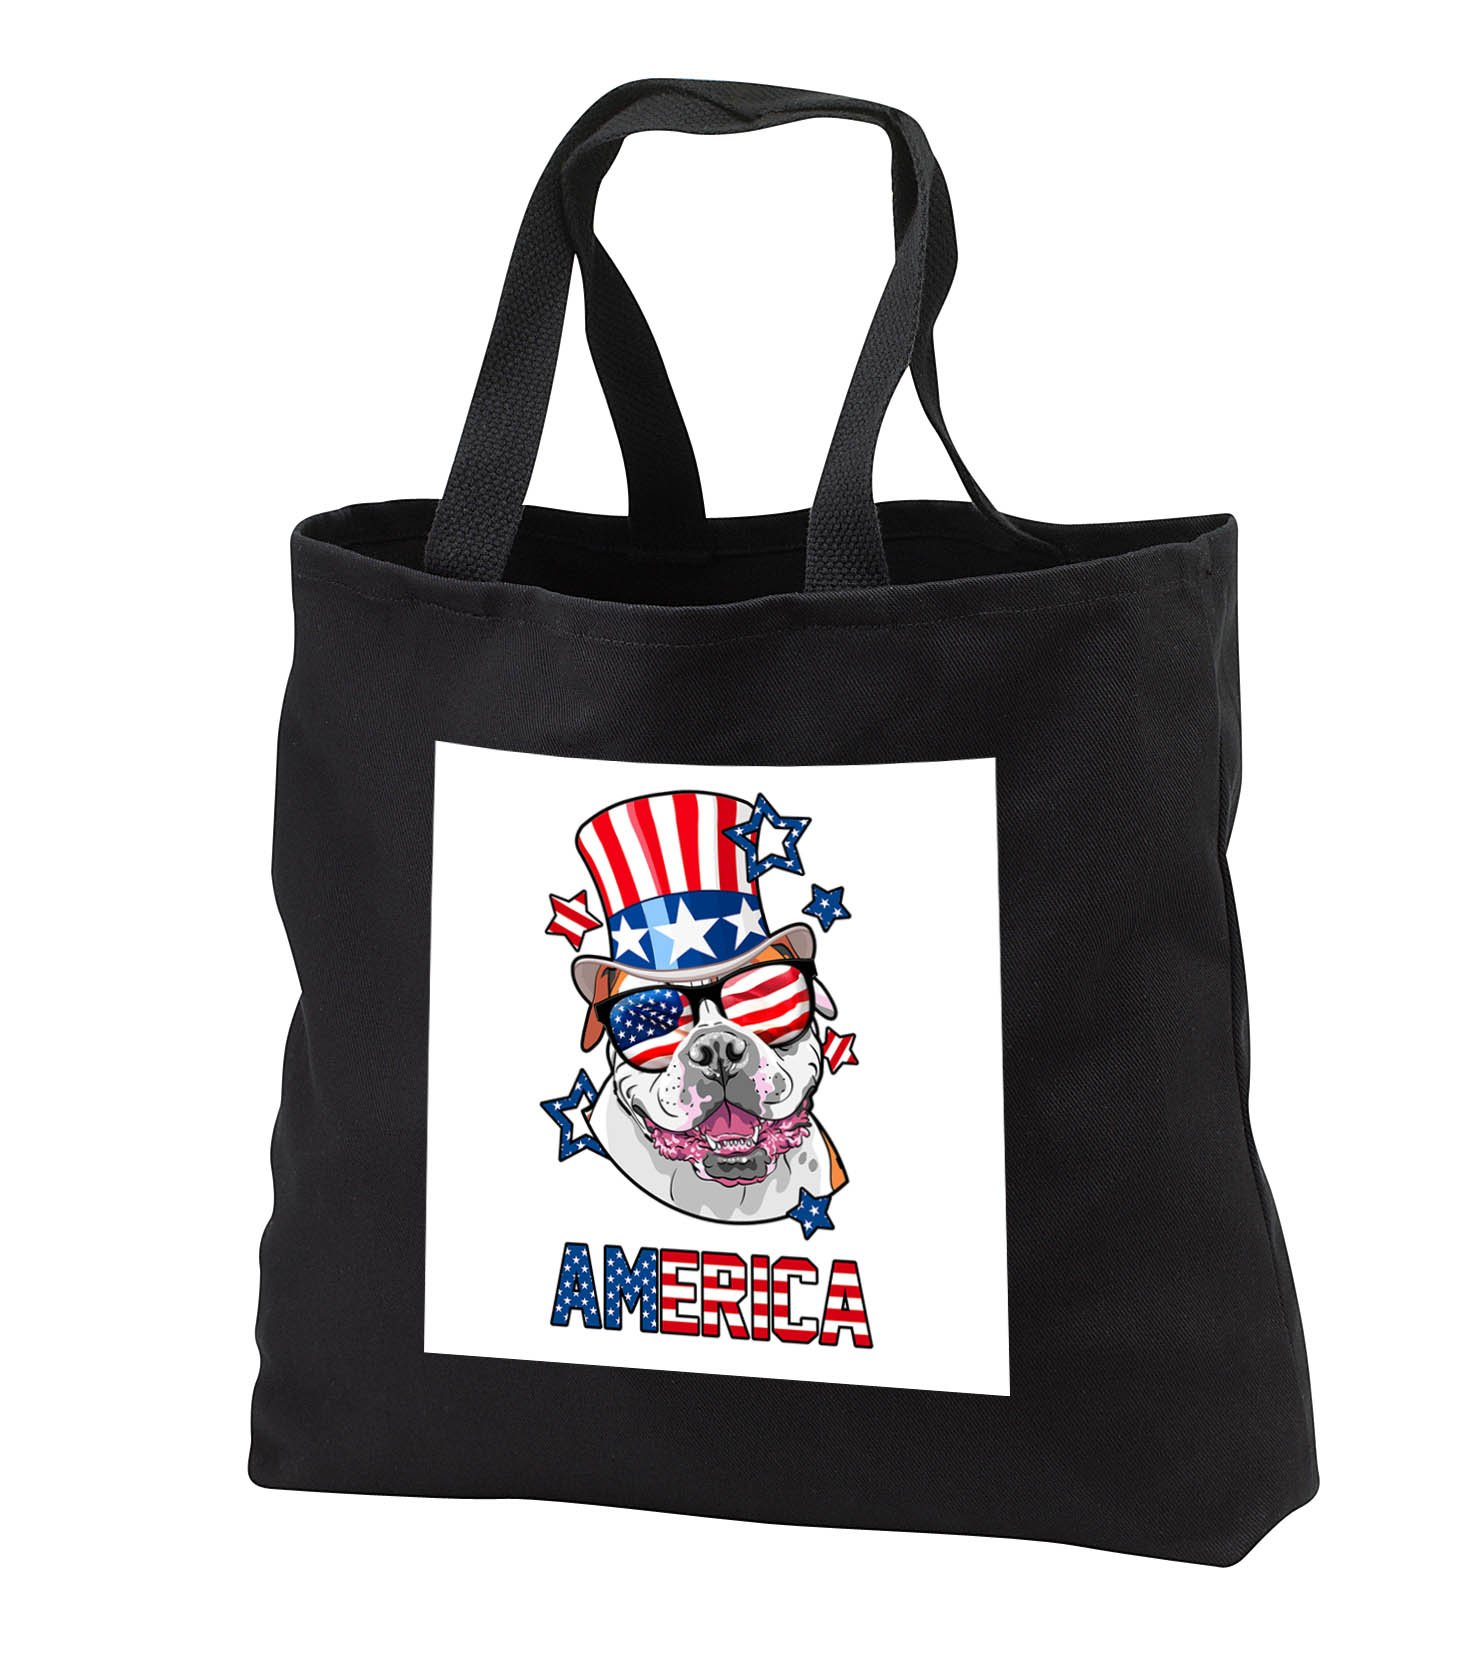 Patriotic American Dogs - American Bulldog With American Flag Sunglasses and Tophat Dog America - Tote Bags - Black Tote Bag 14w x 14h x 3d (tb_284226_1)